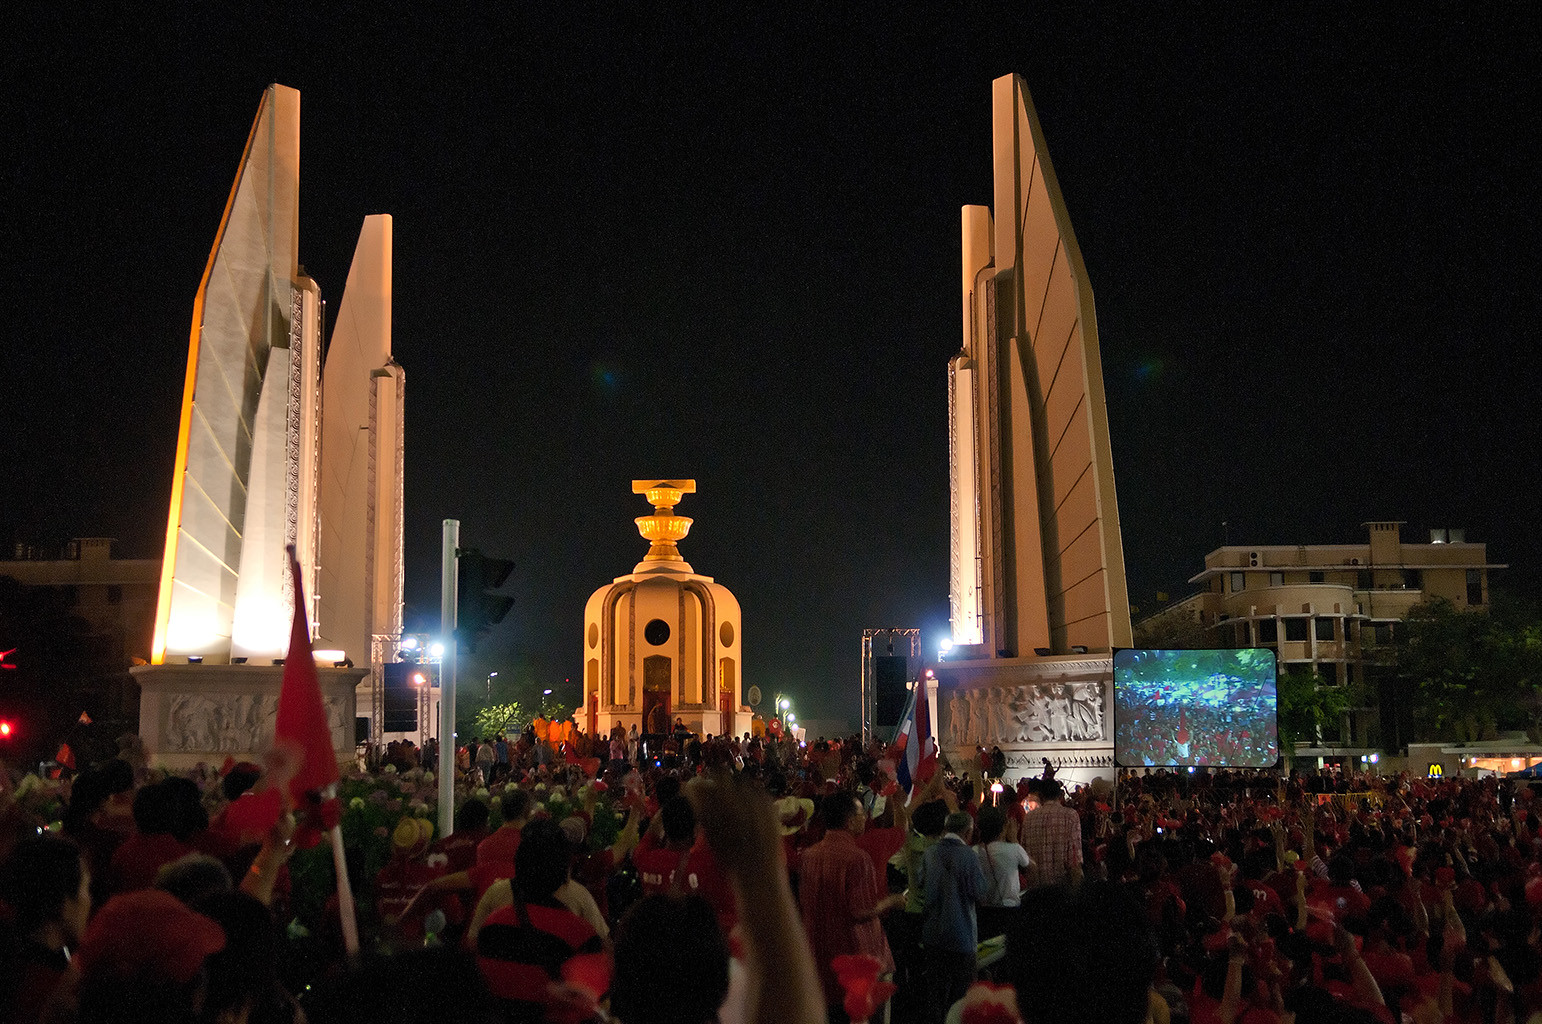 Red-shirt followers gather in remembrance of 2010 violent crackdown